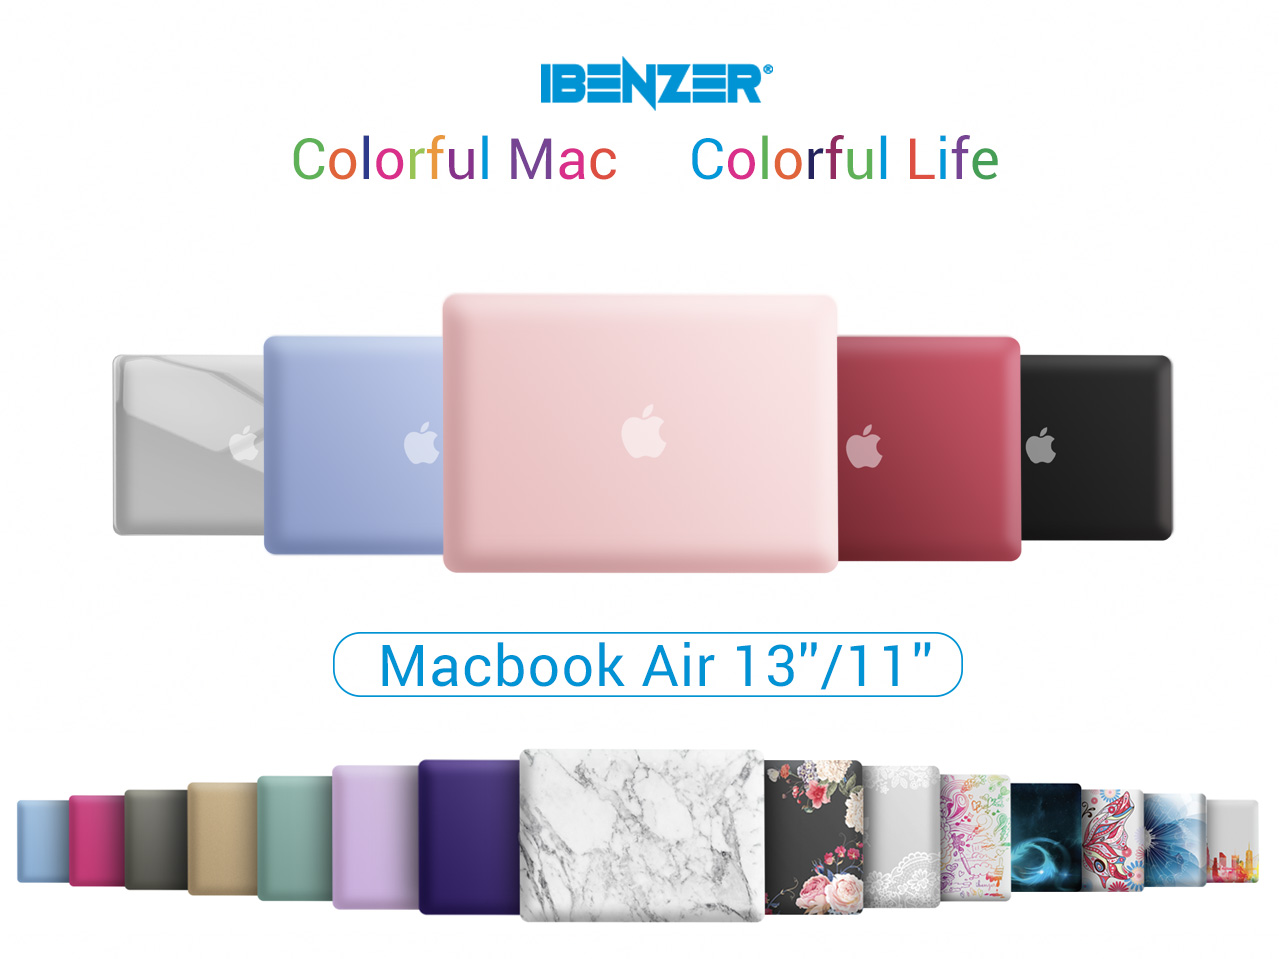 IBENZER MacBook Air 11 Inch Case Model A1370 A1465, Soft Touch Plastic Hard Shell Case Bundle with Keyboard Cover for Apple Laptop Mac Air 11, Rose Gold, A11MPK+1A